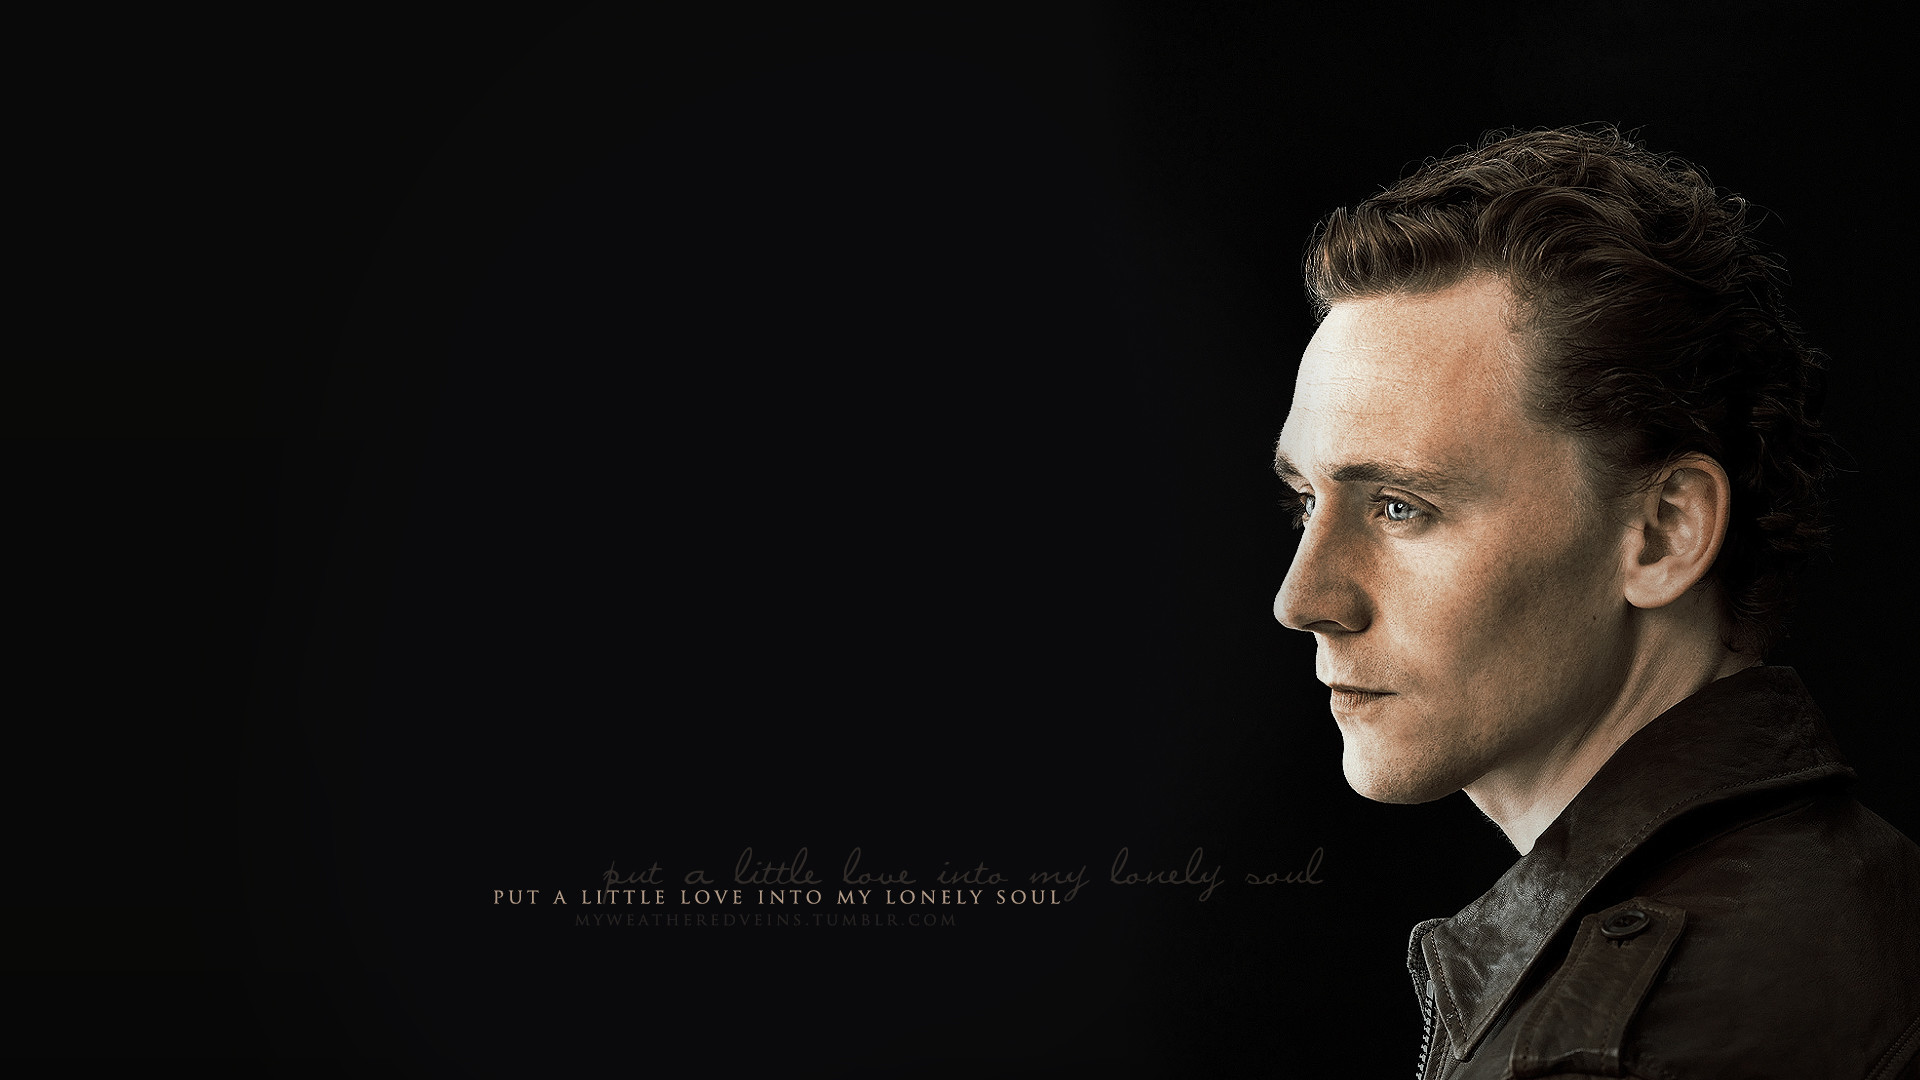 Tom Hiddleston Wallpaper Hd 79 Images